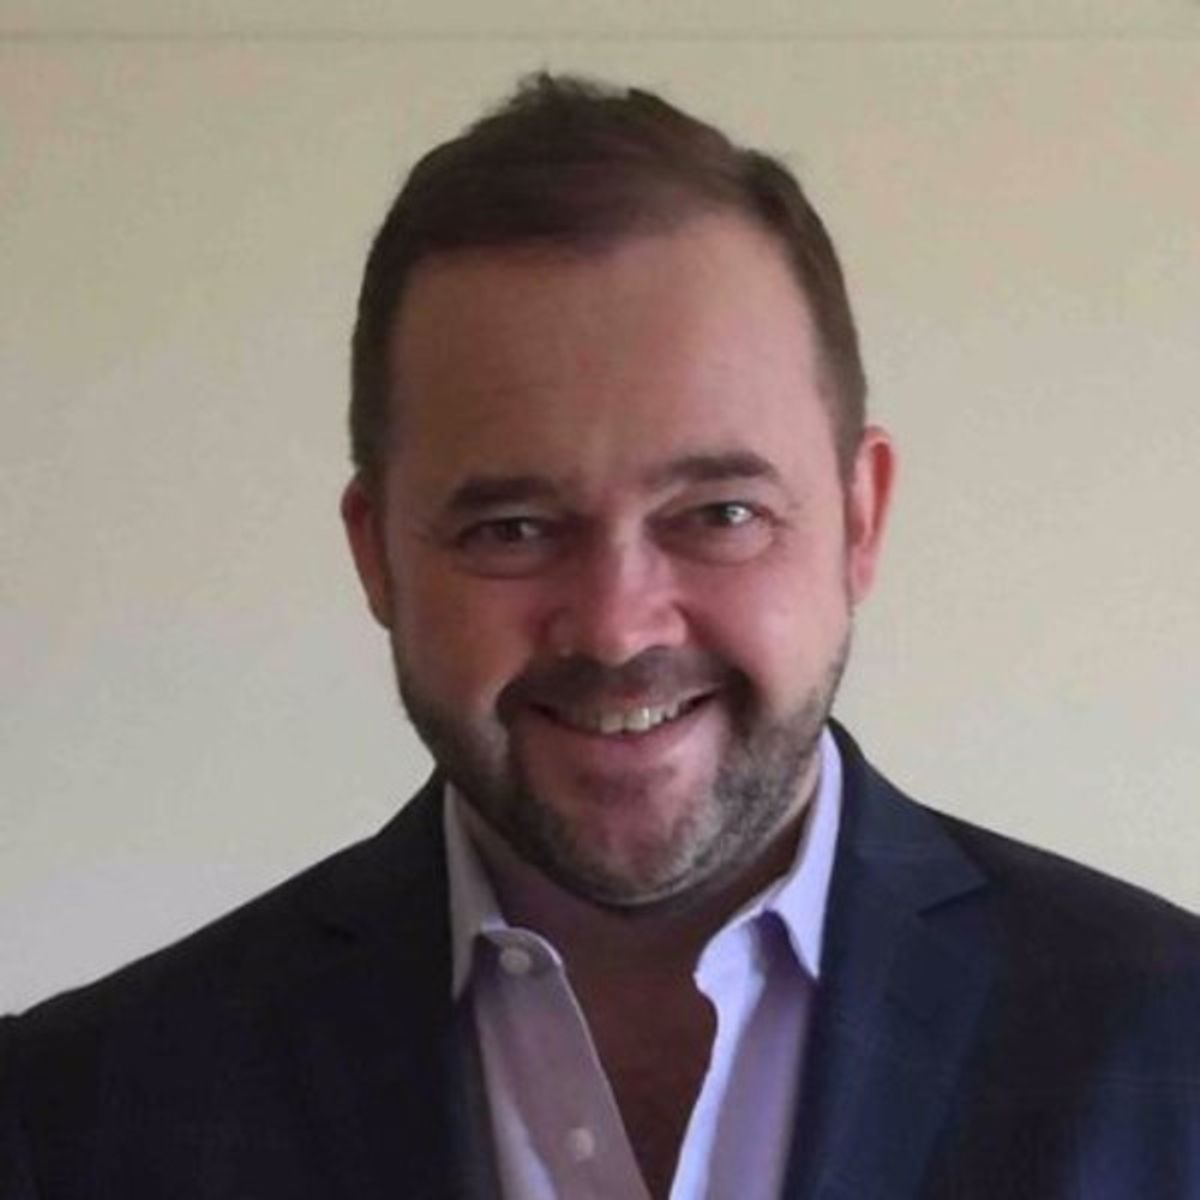 Photo of Greg Griffiths, President at UCROWDME (UK) LIMITED